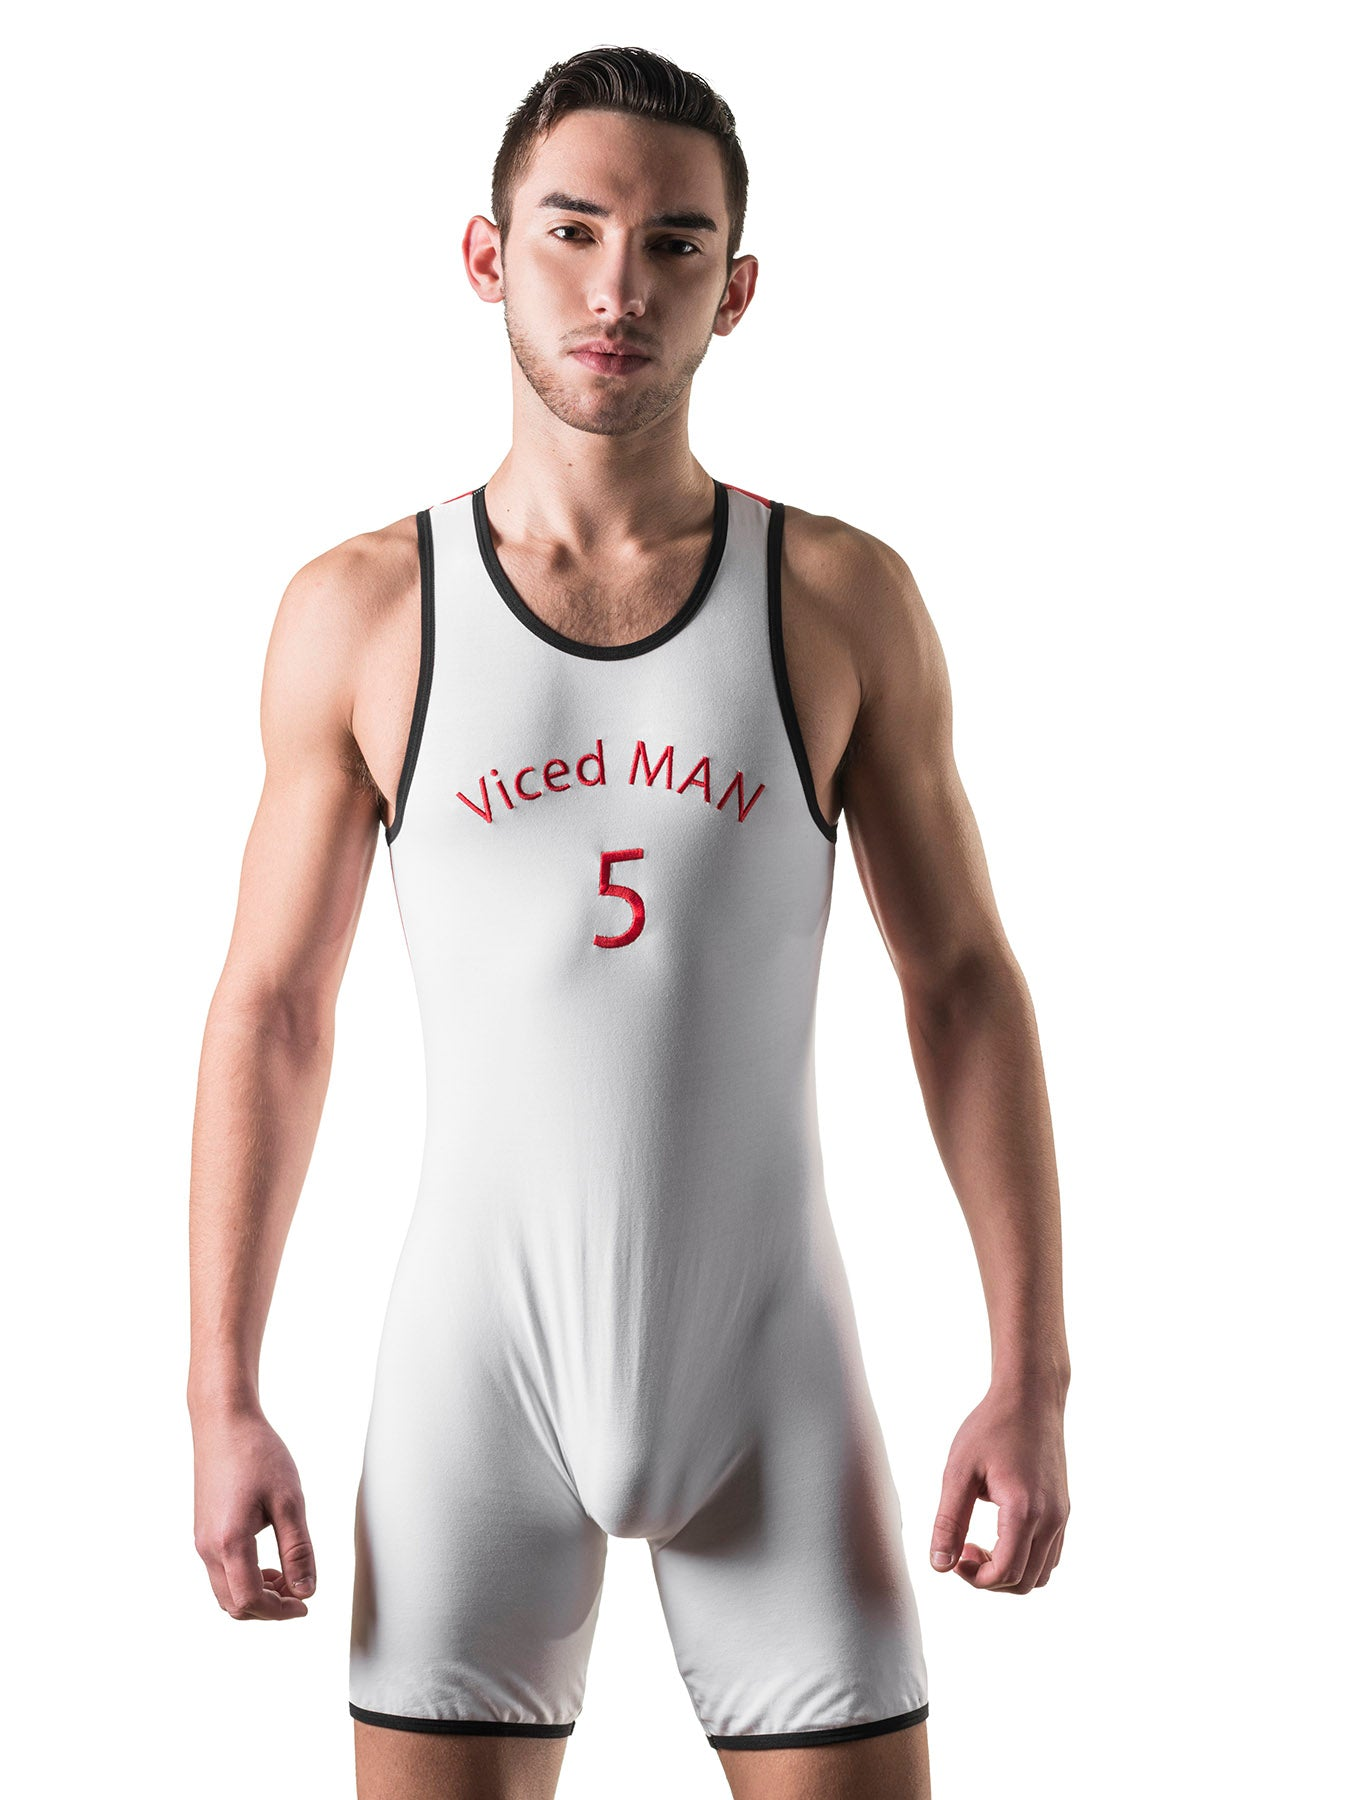 Viced MAN Singlet - Viced MAN US Store